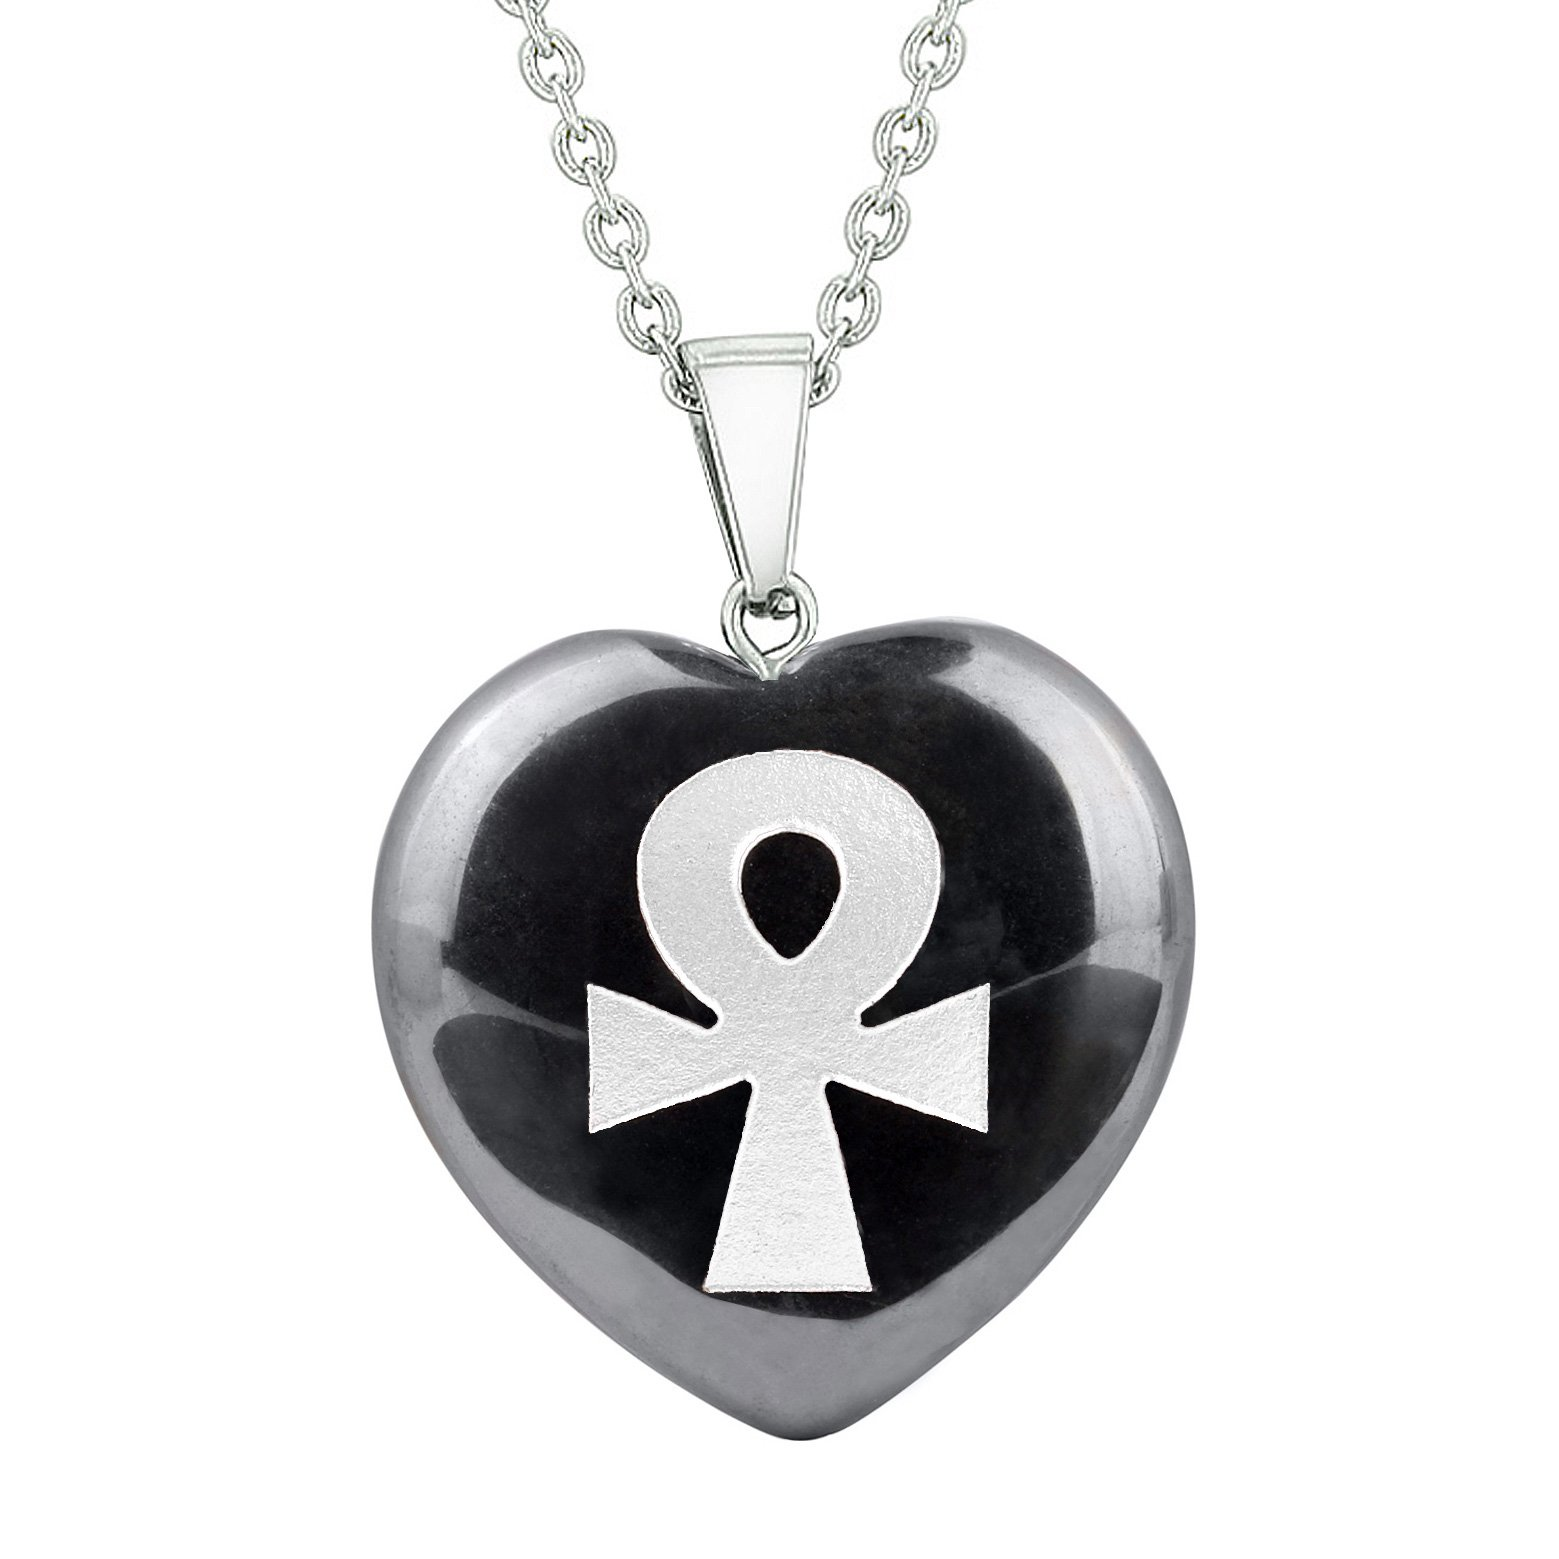 Ankh Powers of Life Ancient Amulets in Hematite Gemstone